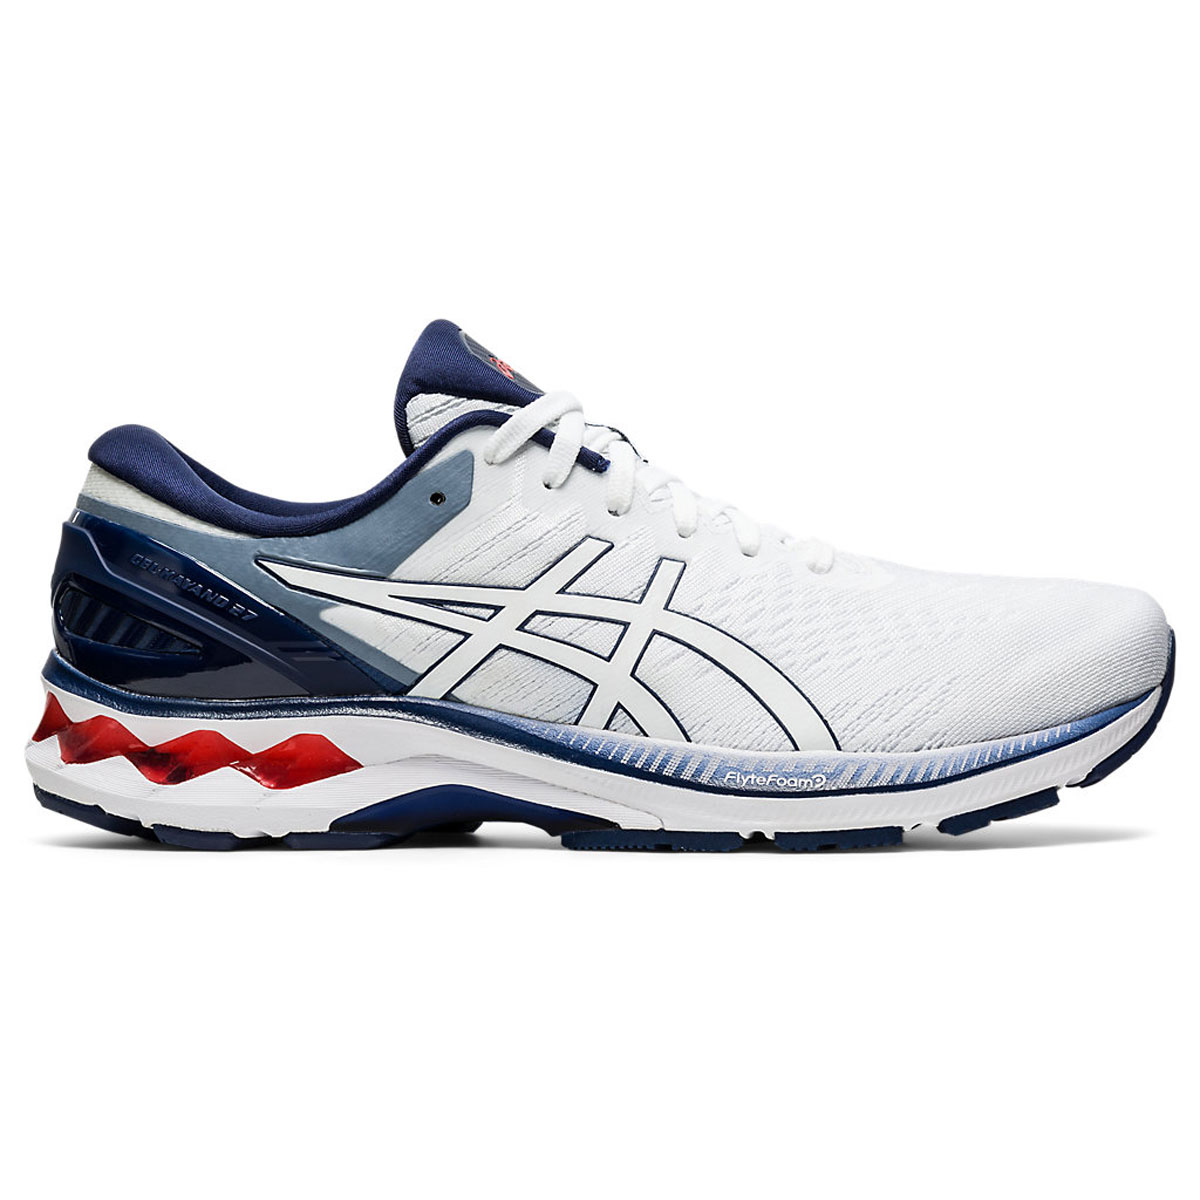 Men's Asics GEL-Kayano 27 Running Shoe - Color: White/Peacoat (Regular Width) - Size: 6, White/Peacoat, large, image 1